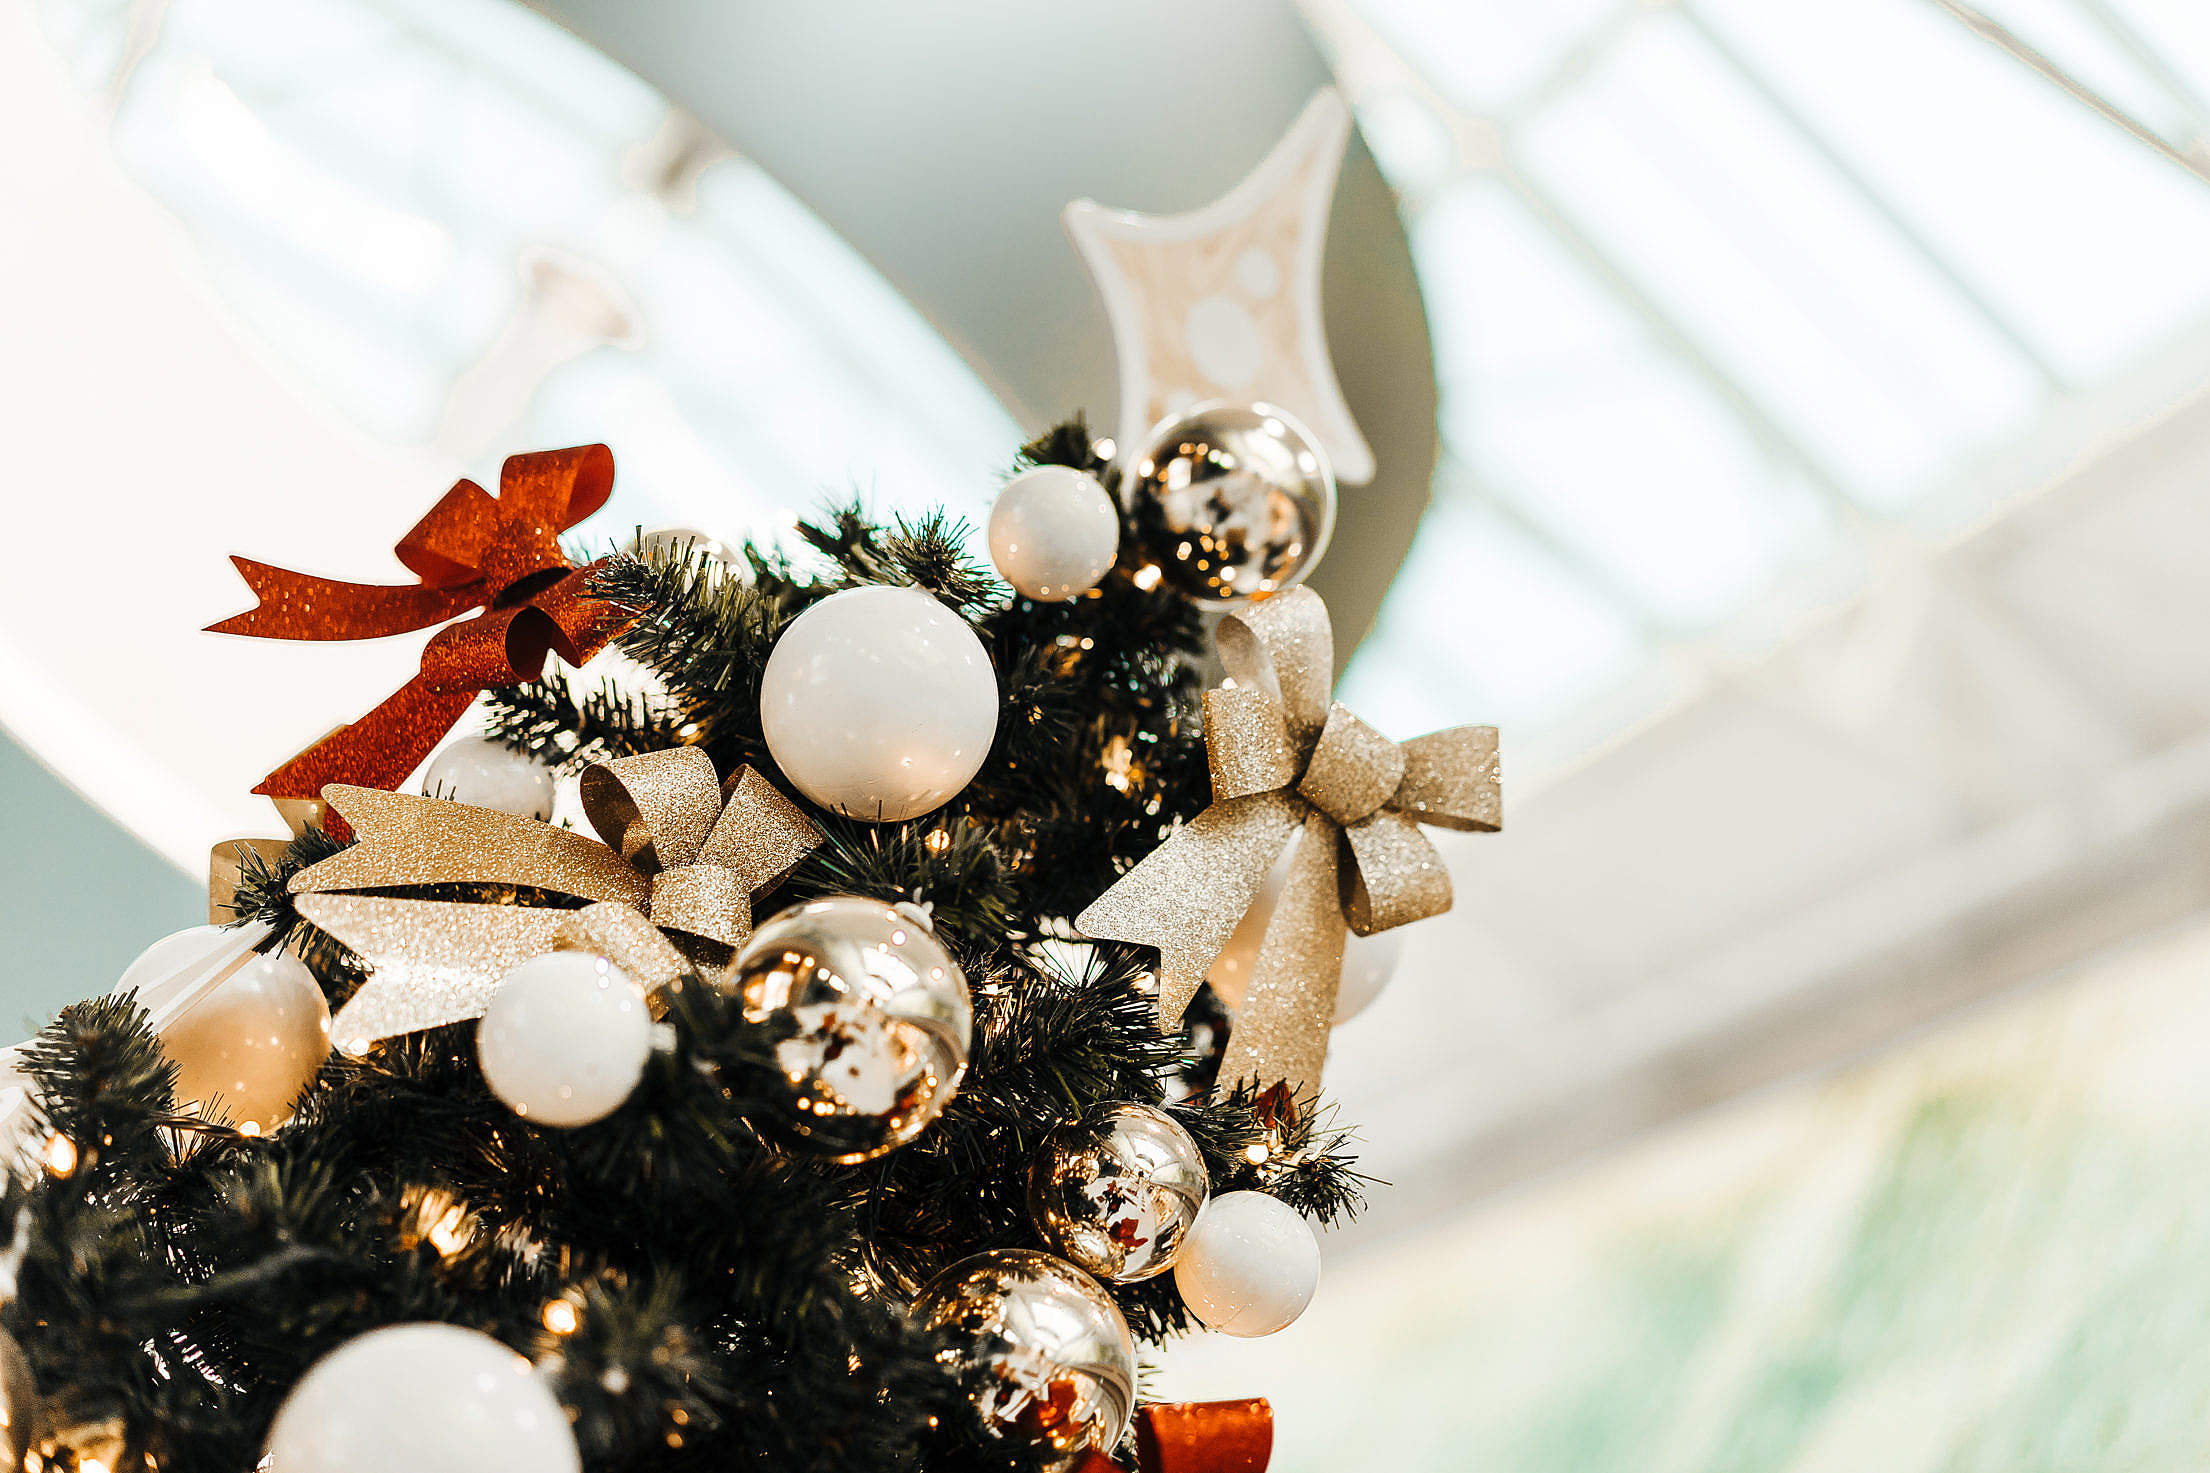 Top of the Christmas Tree Free Stock Photo